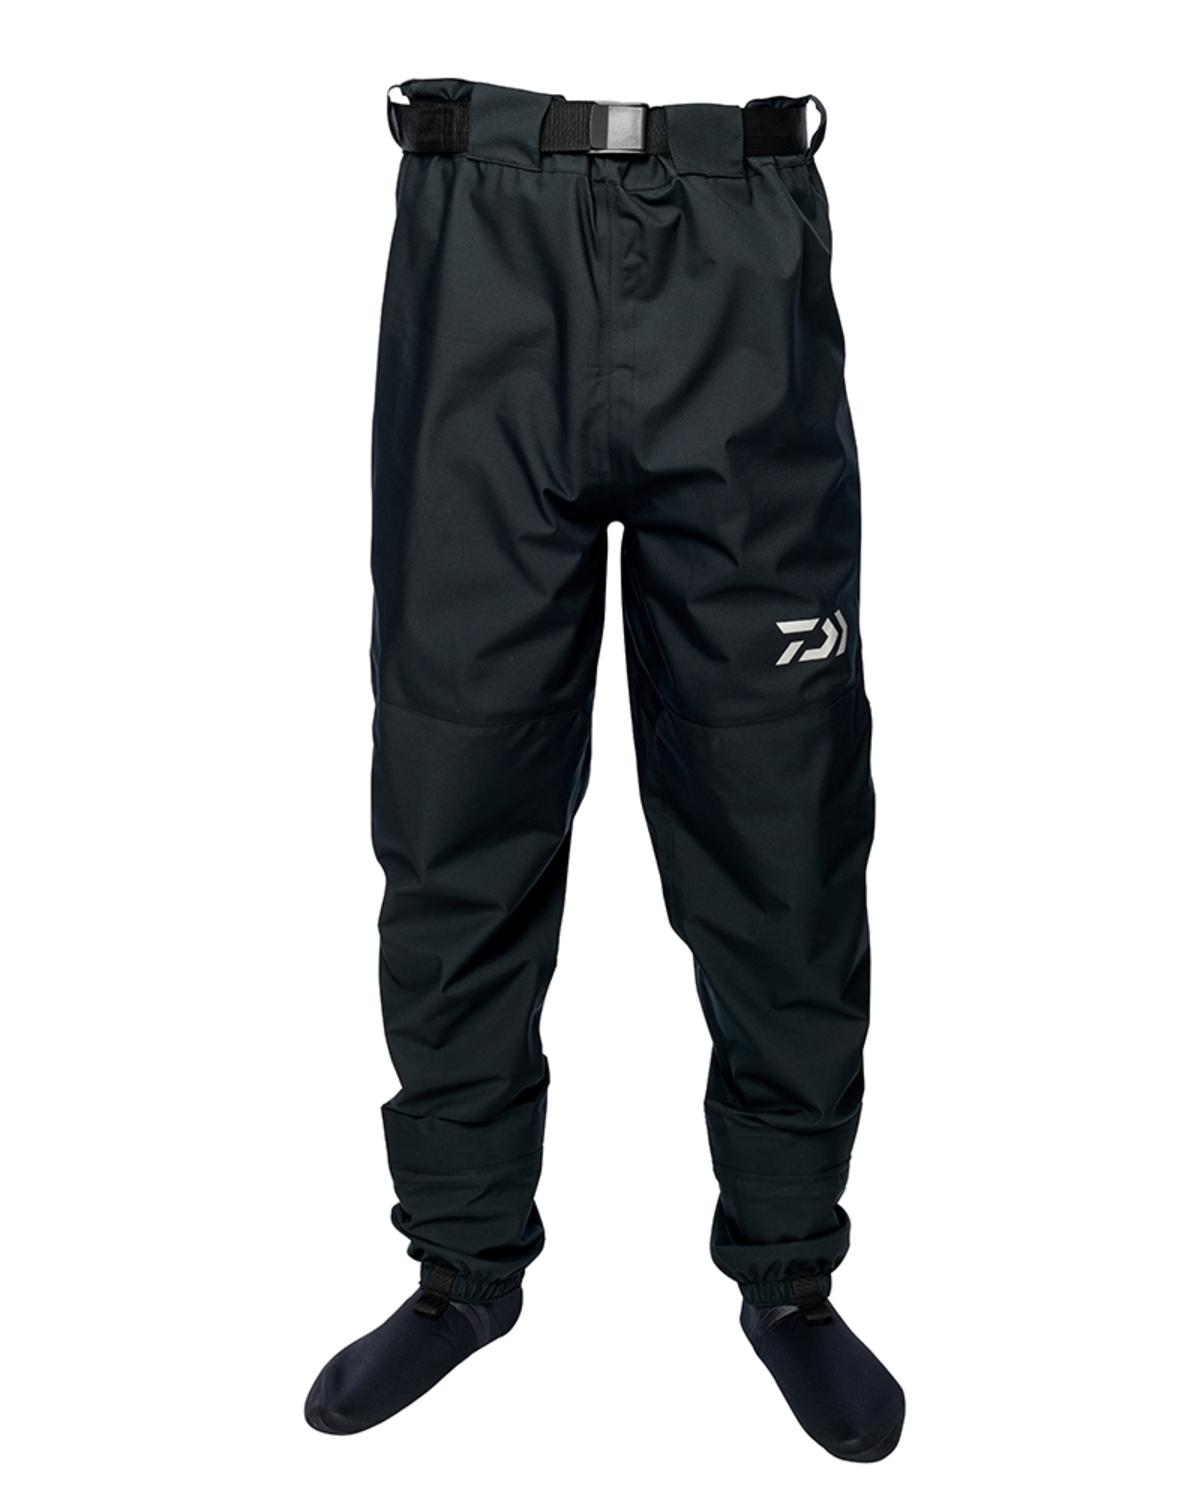 Ex Display Daiwa Breathable Waist waders Size 11